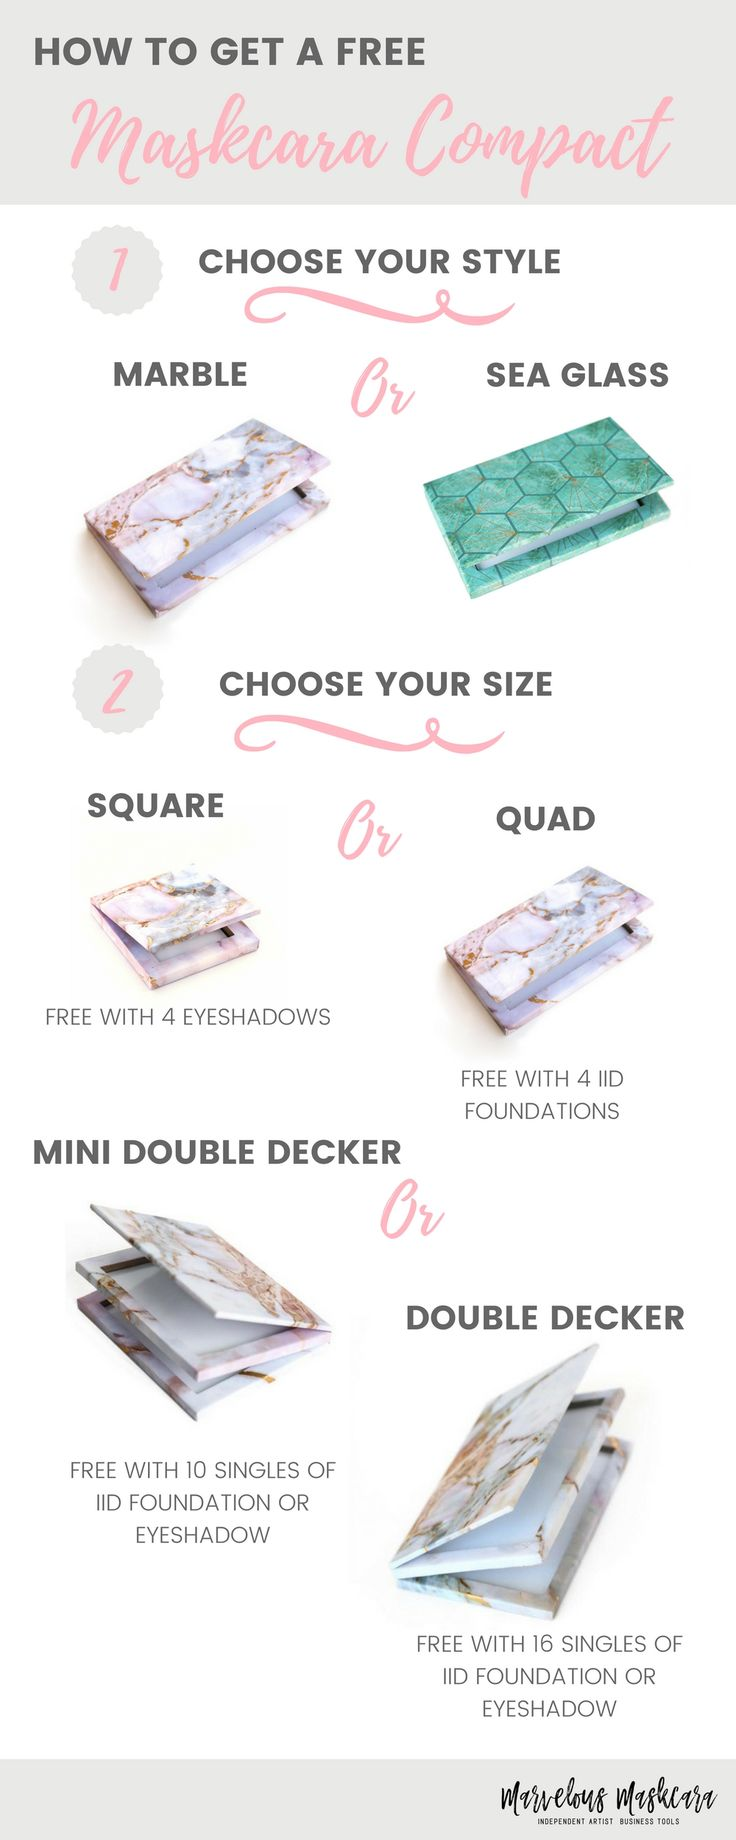 How to Get a Free Maskcara Compact | Maskcara Beauty | Simple Minimalist Makeup Palette and Compact| Square, Quad, Mini Double Decker, Double Decker | Free Magnetic Makeup Compact when you buy...